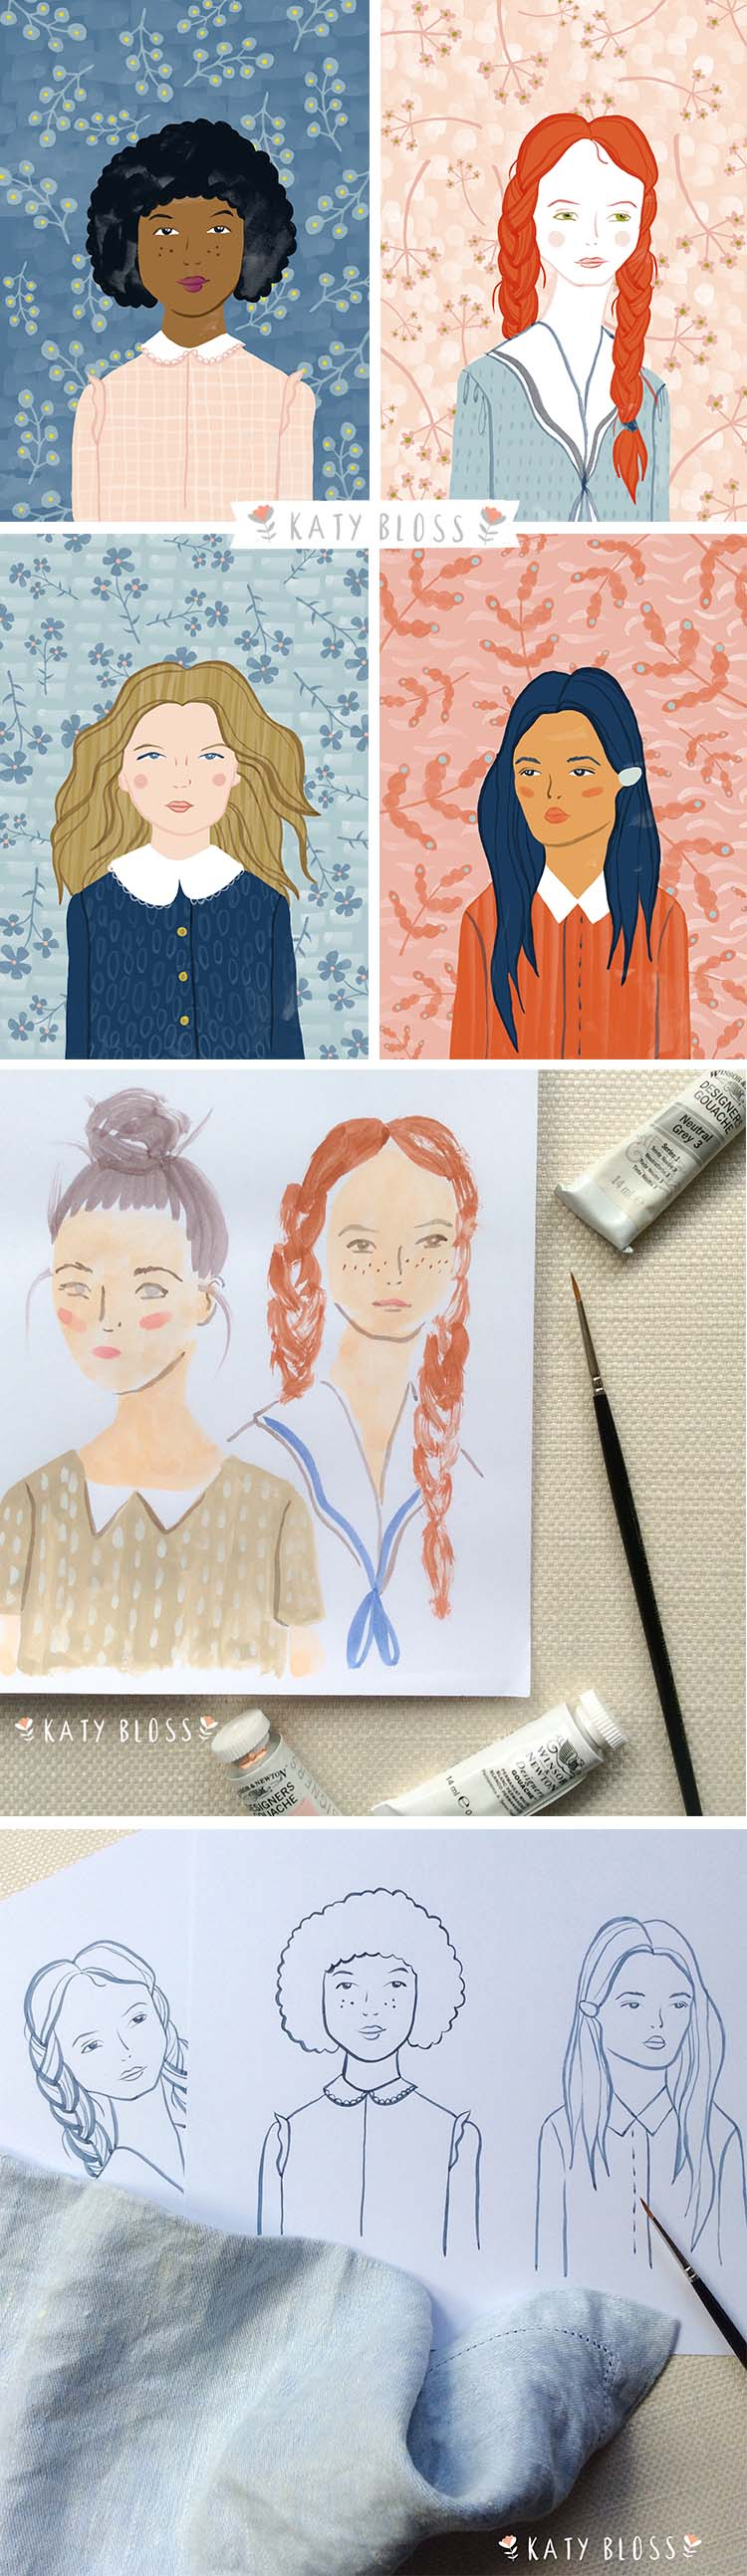 Katy Bloss Girls in Shirts Illustration Series Design Process